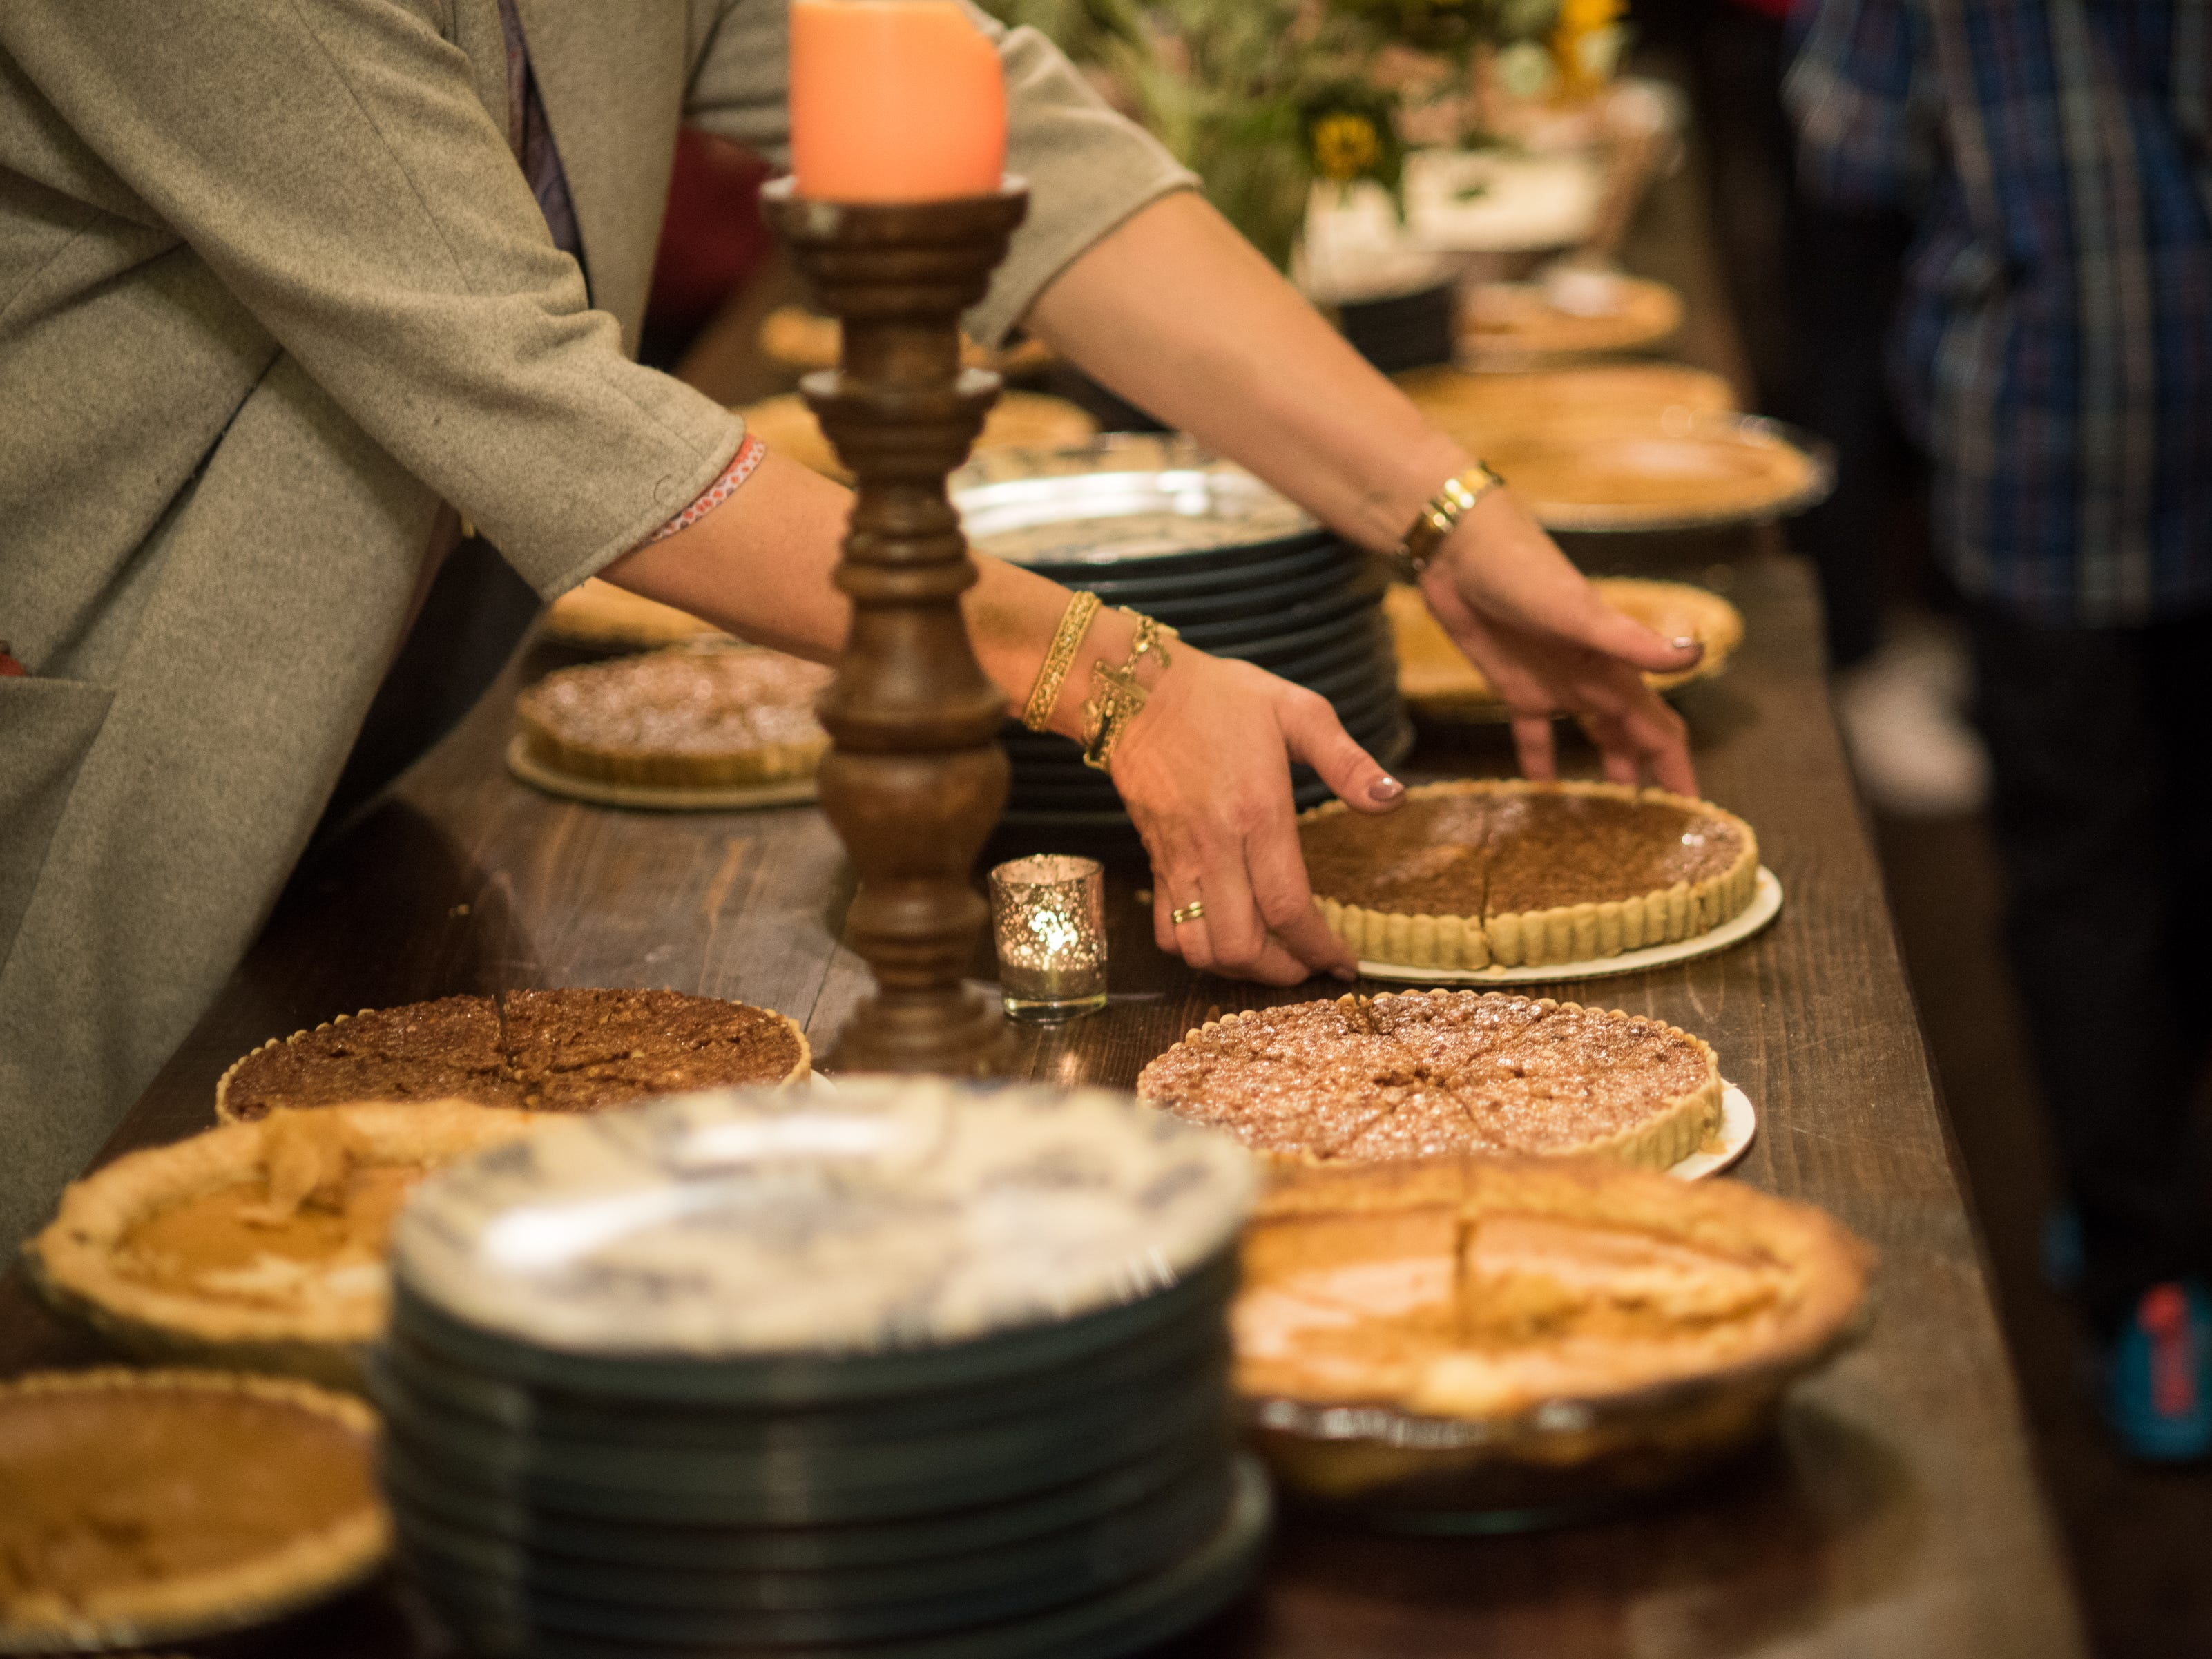 No detail is left out at Donna's Table. An annual Thanksgiving lunch for the homeless that Glenda Hastings hosts at her East Memphis restaurant Napa Cafe.